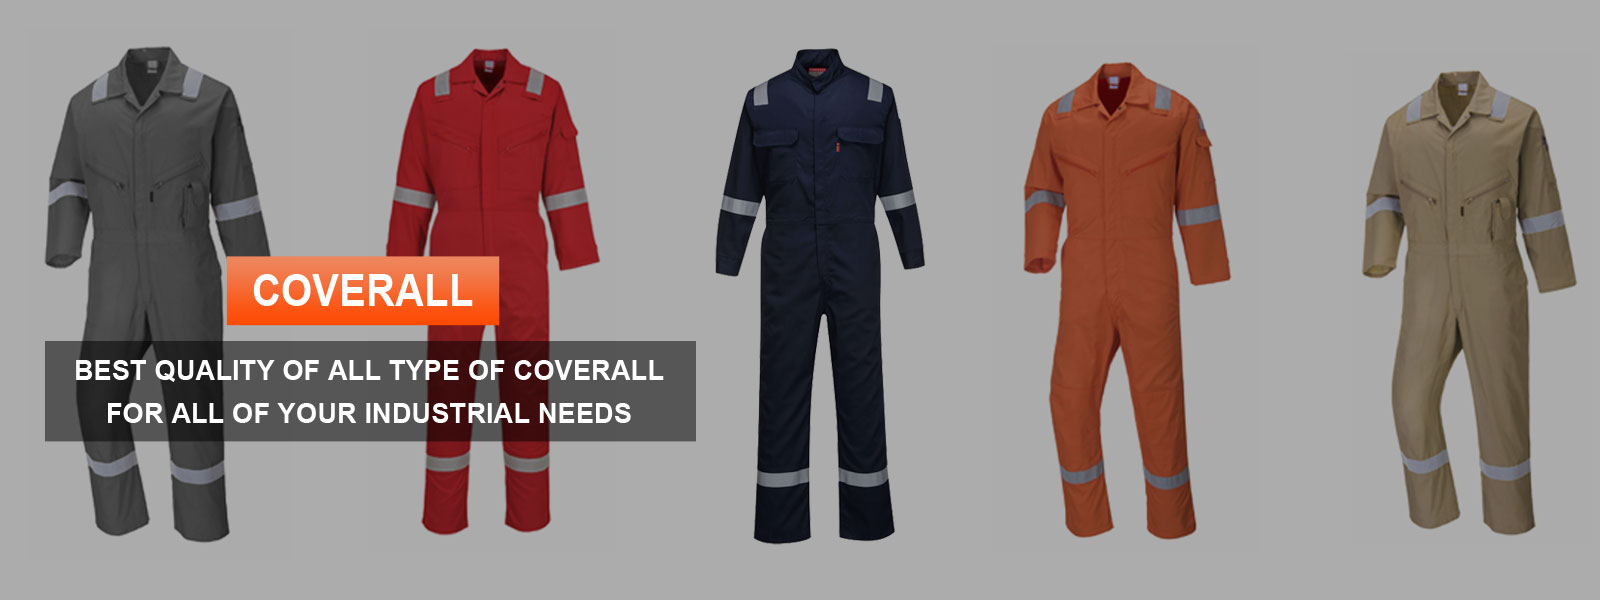 Coverall Manufacturers in Guinea Bissau